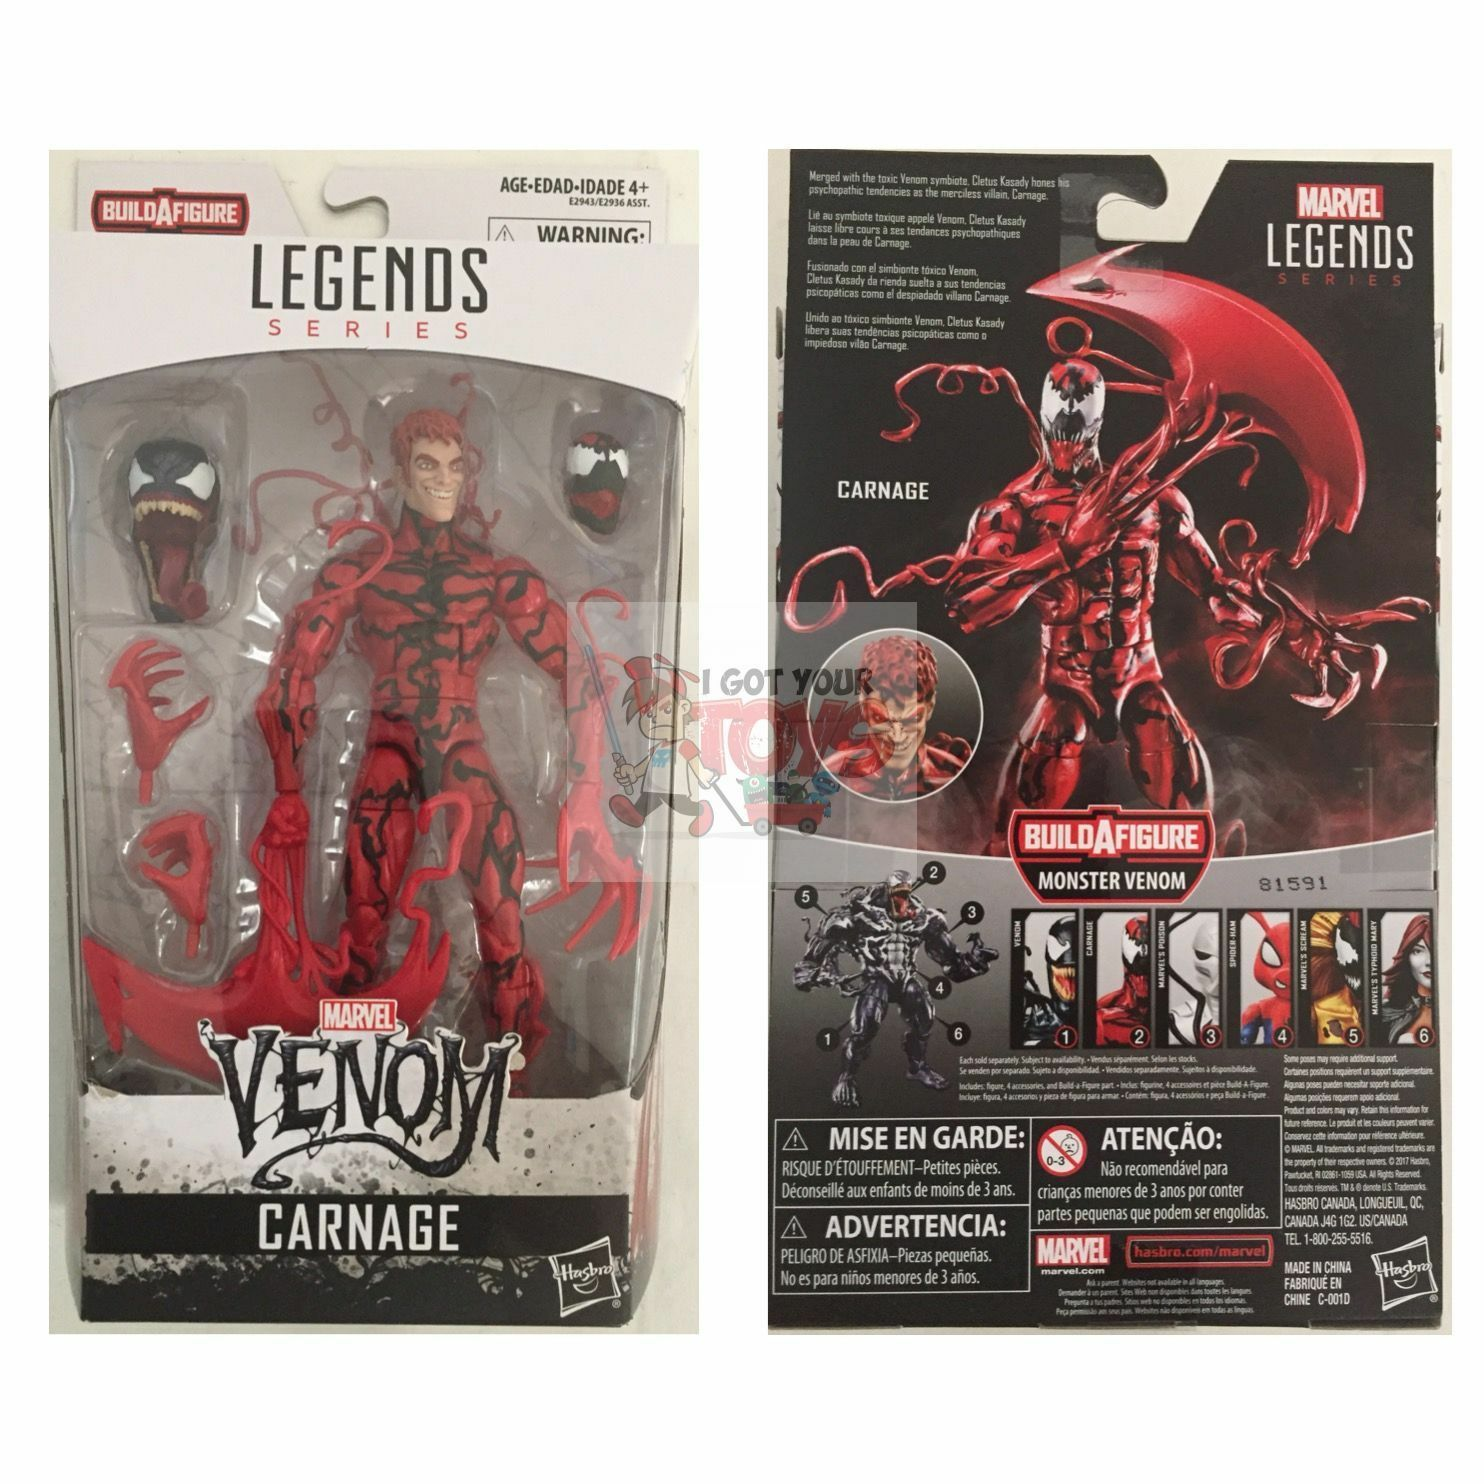 CARNAGE + BAF PART HASBRO VENOM Marvel Legends 2018 6  inch ACTION FIGURE